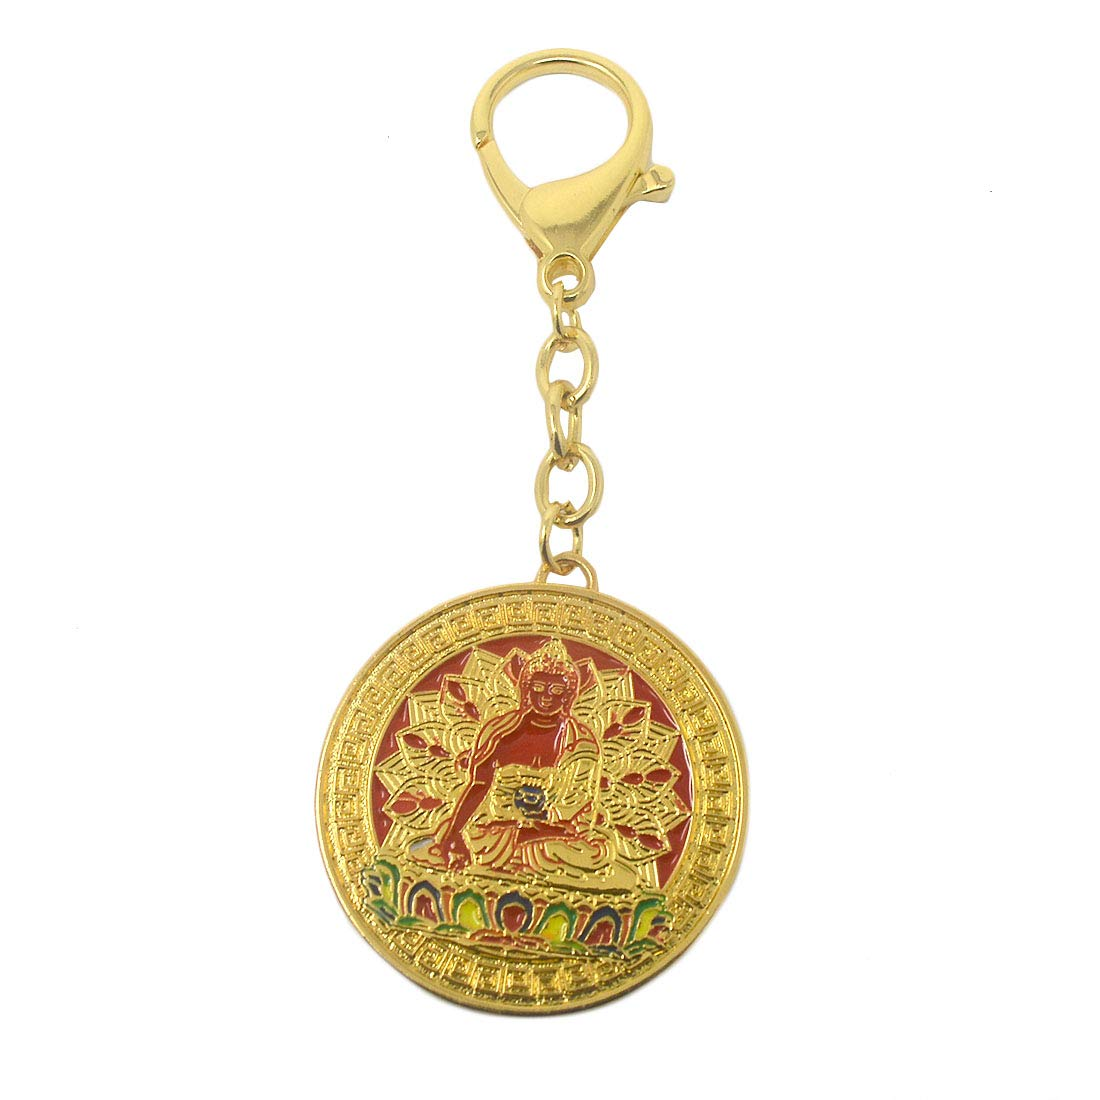 Feng Shui 2019 New Ratnasambhava Buddha Pendant Keychain W Red String Bracelet W3692(red) by fengshuisale